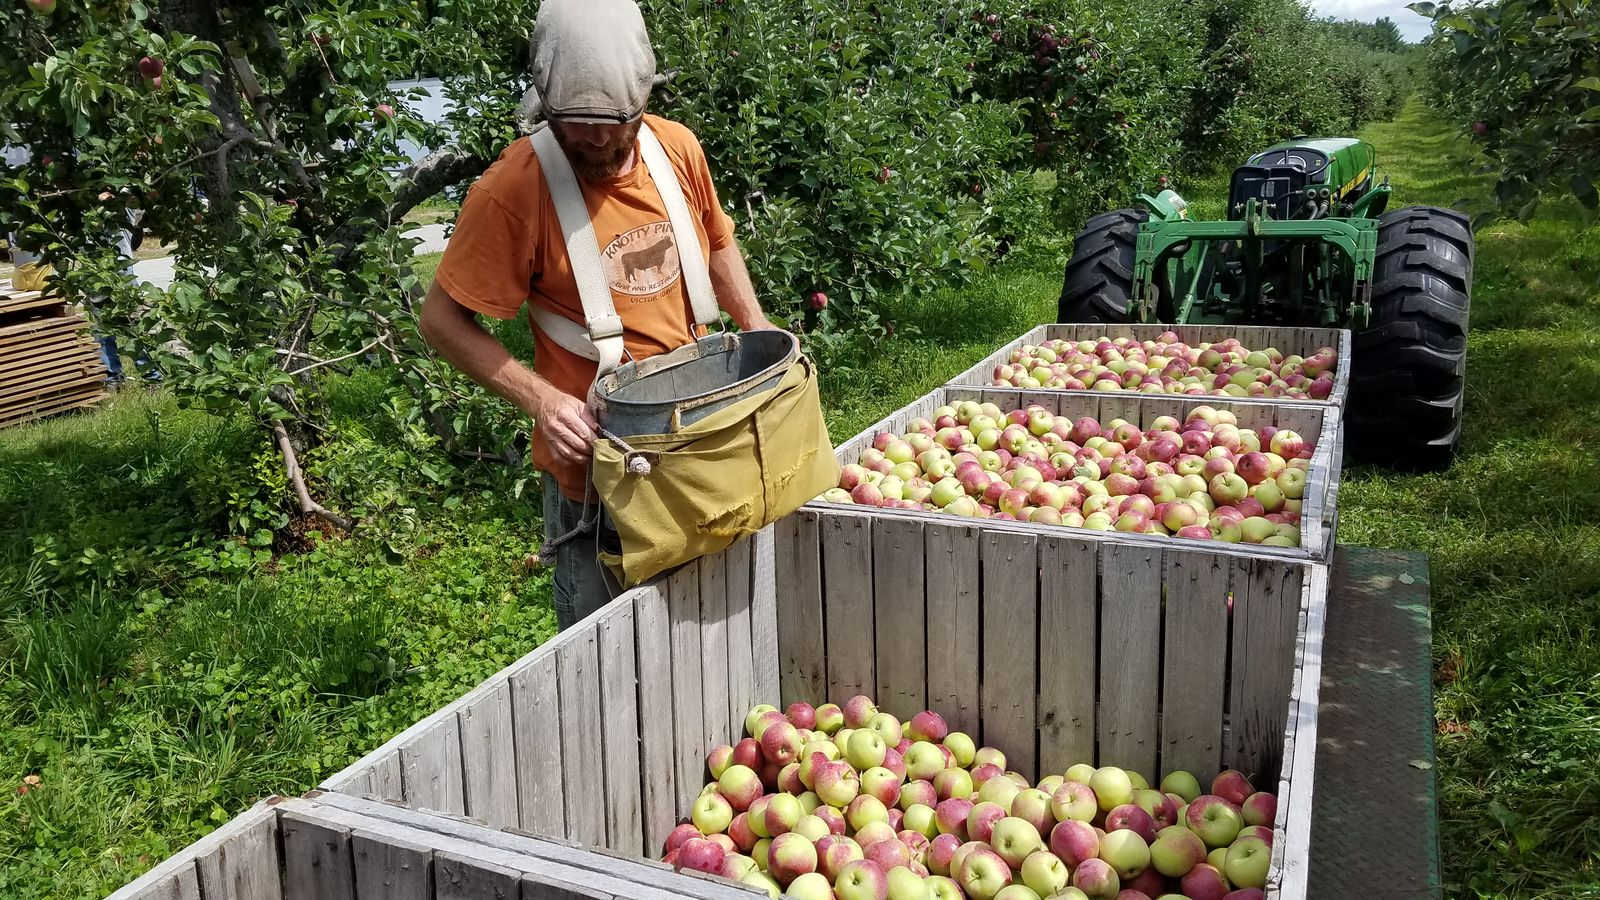 A worker gathering apples to sell at Randall Orchards. (WGME)